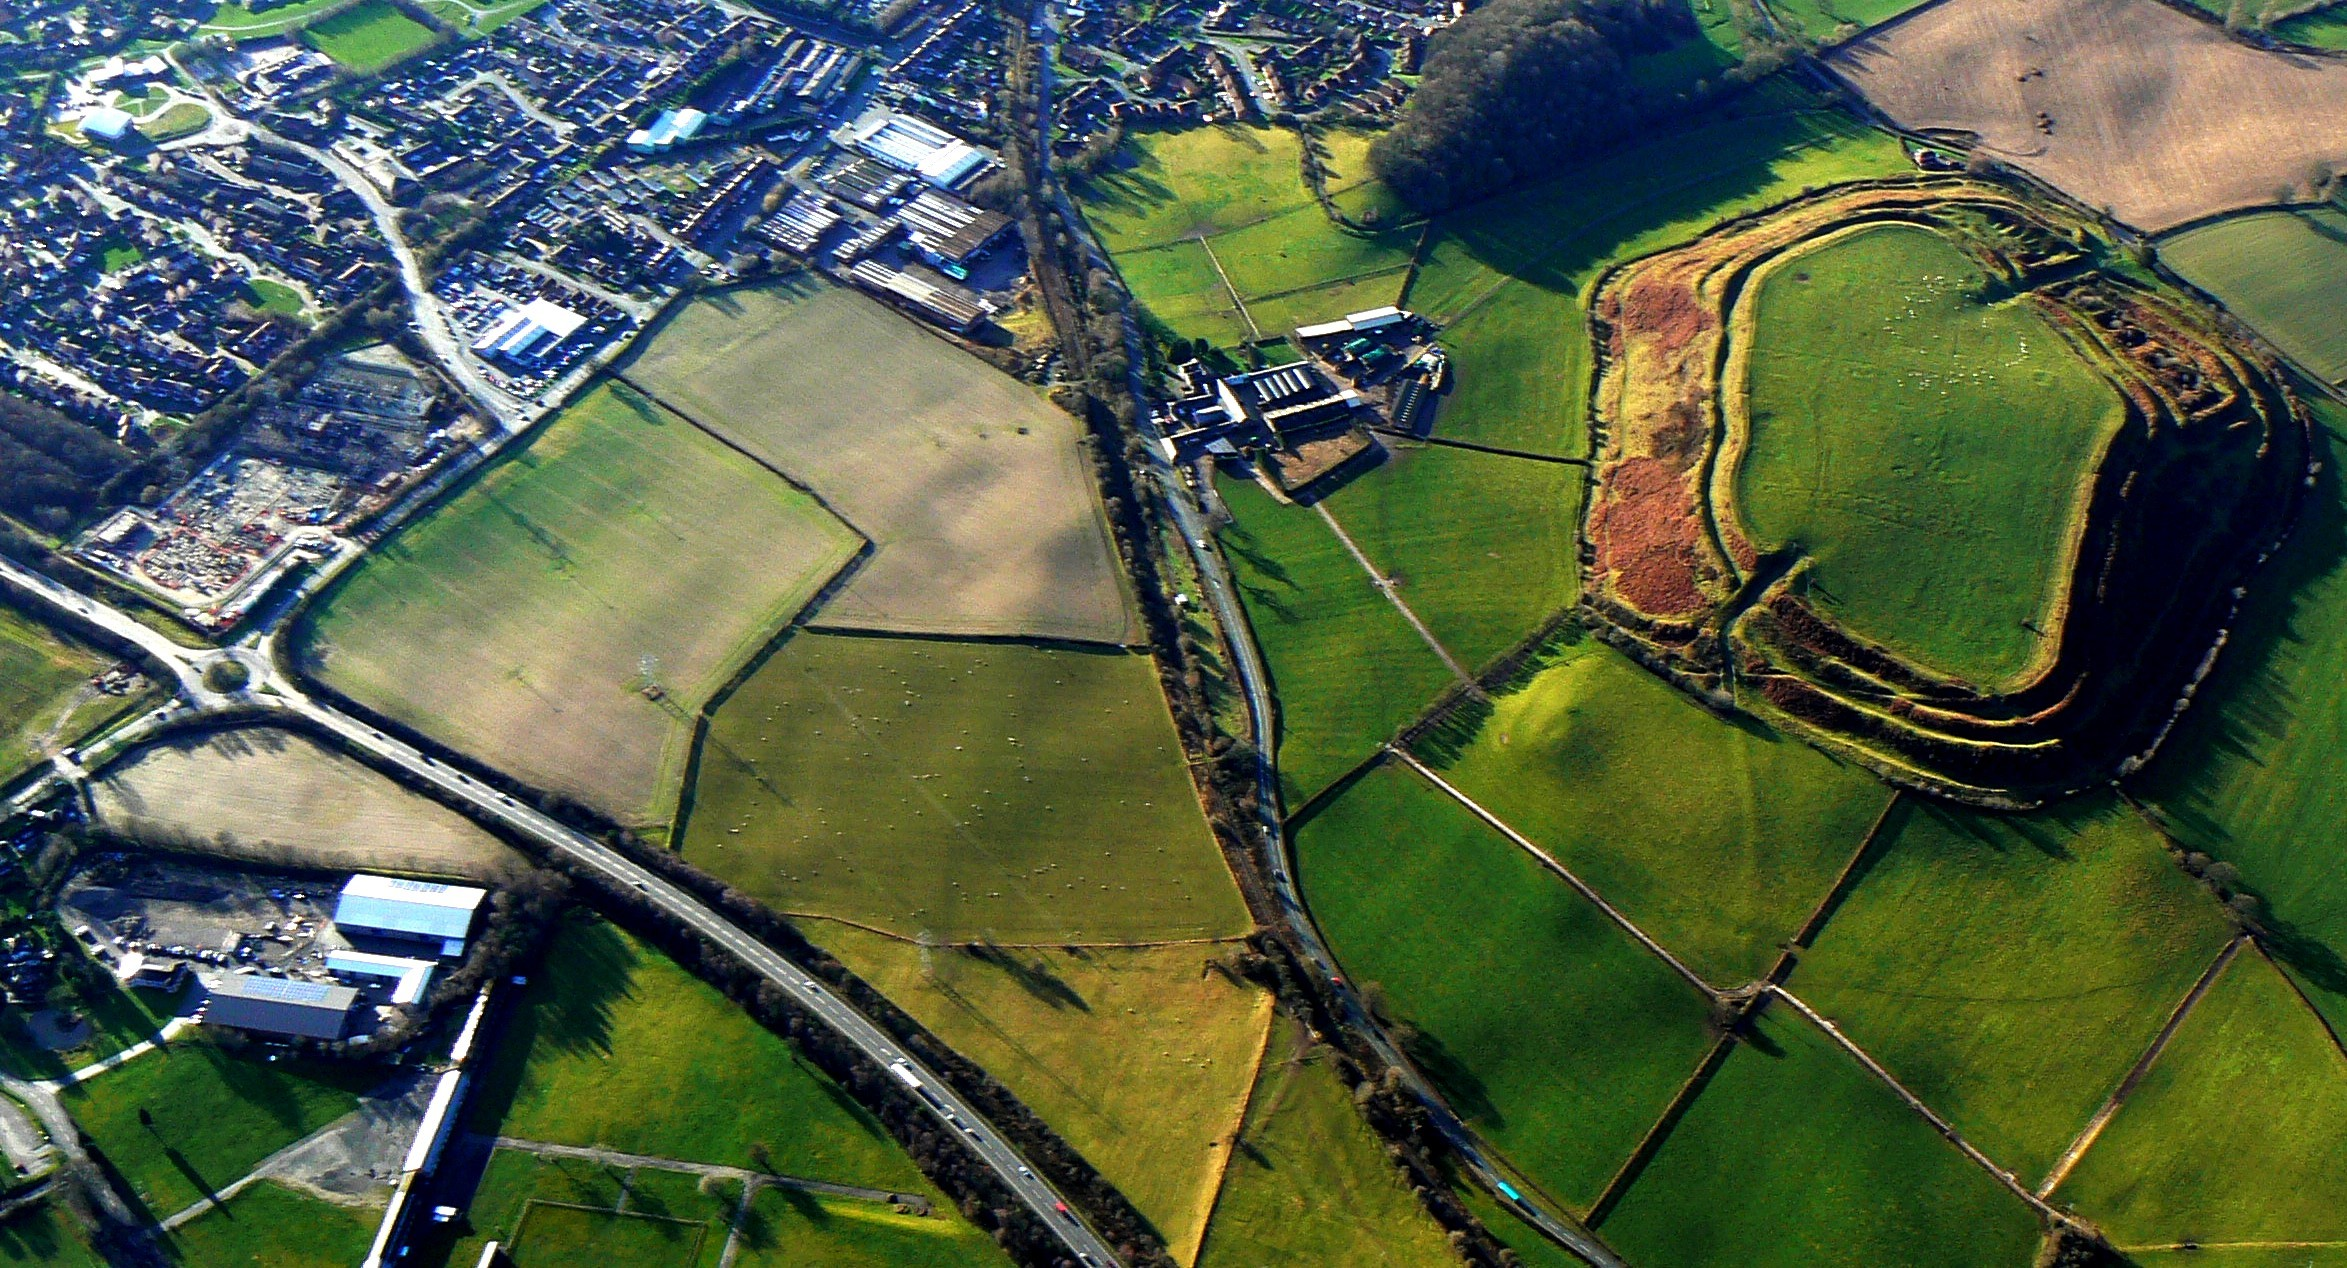 Old Oswestry hillfort and CROP lie within 200 metres of each other close to the Cambrian Heritage Railway line north of Oswestry.